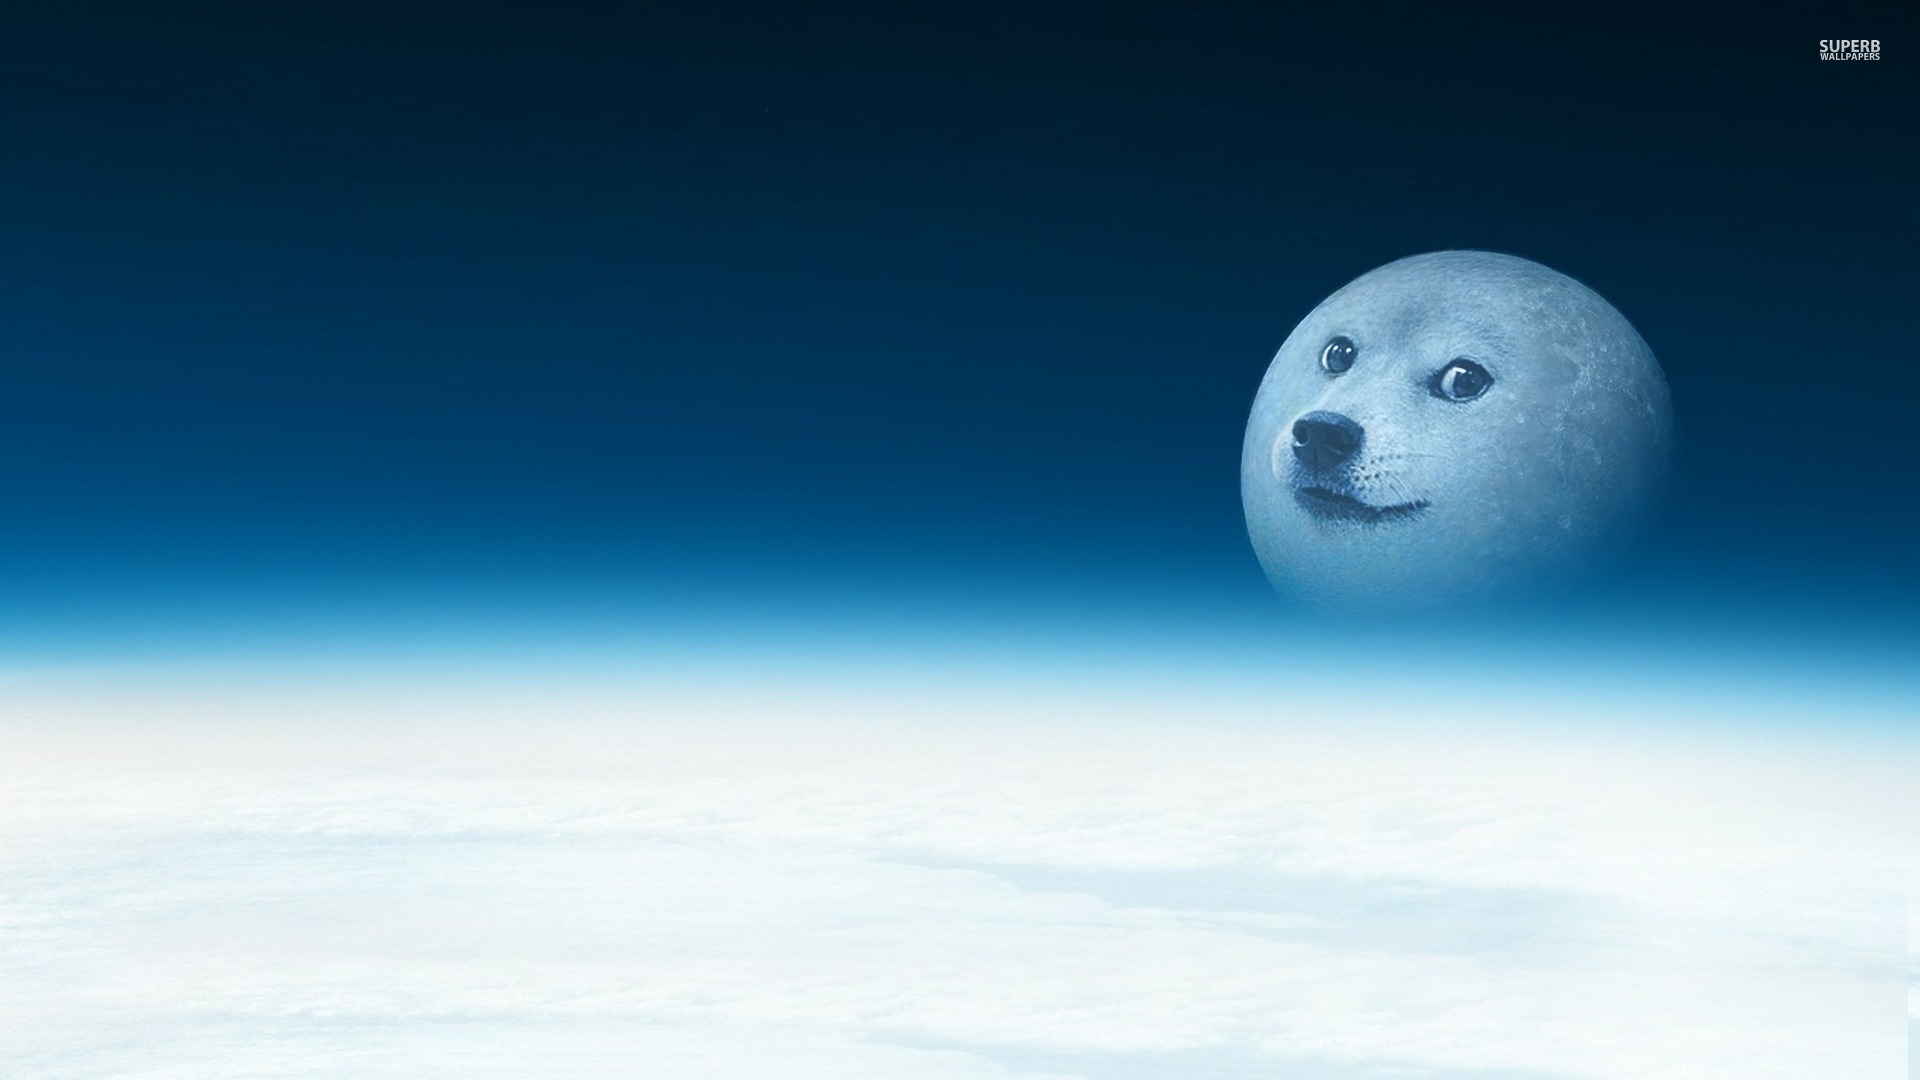 doge   Doge Wallpaper 1920x1080 100012 1920x1080